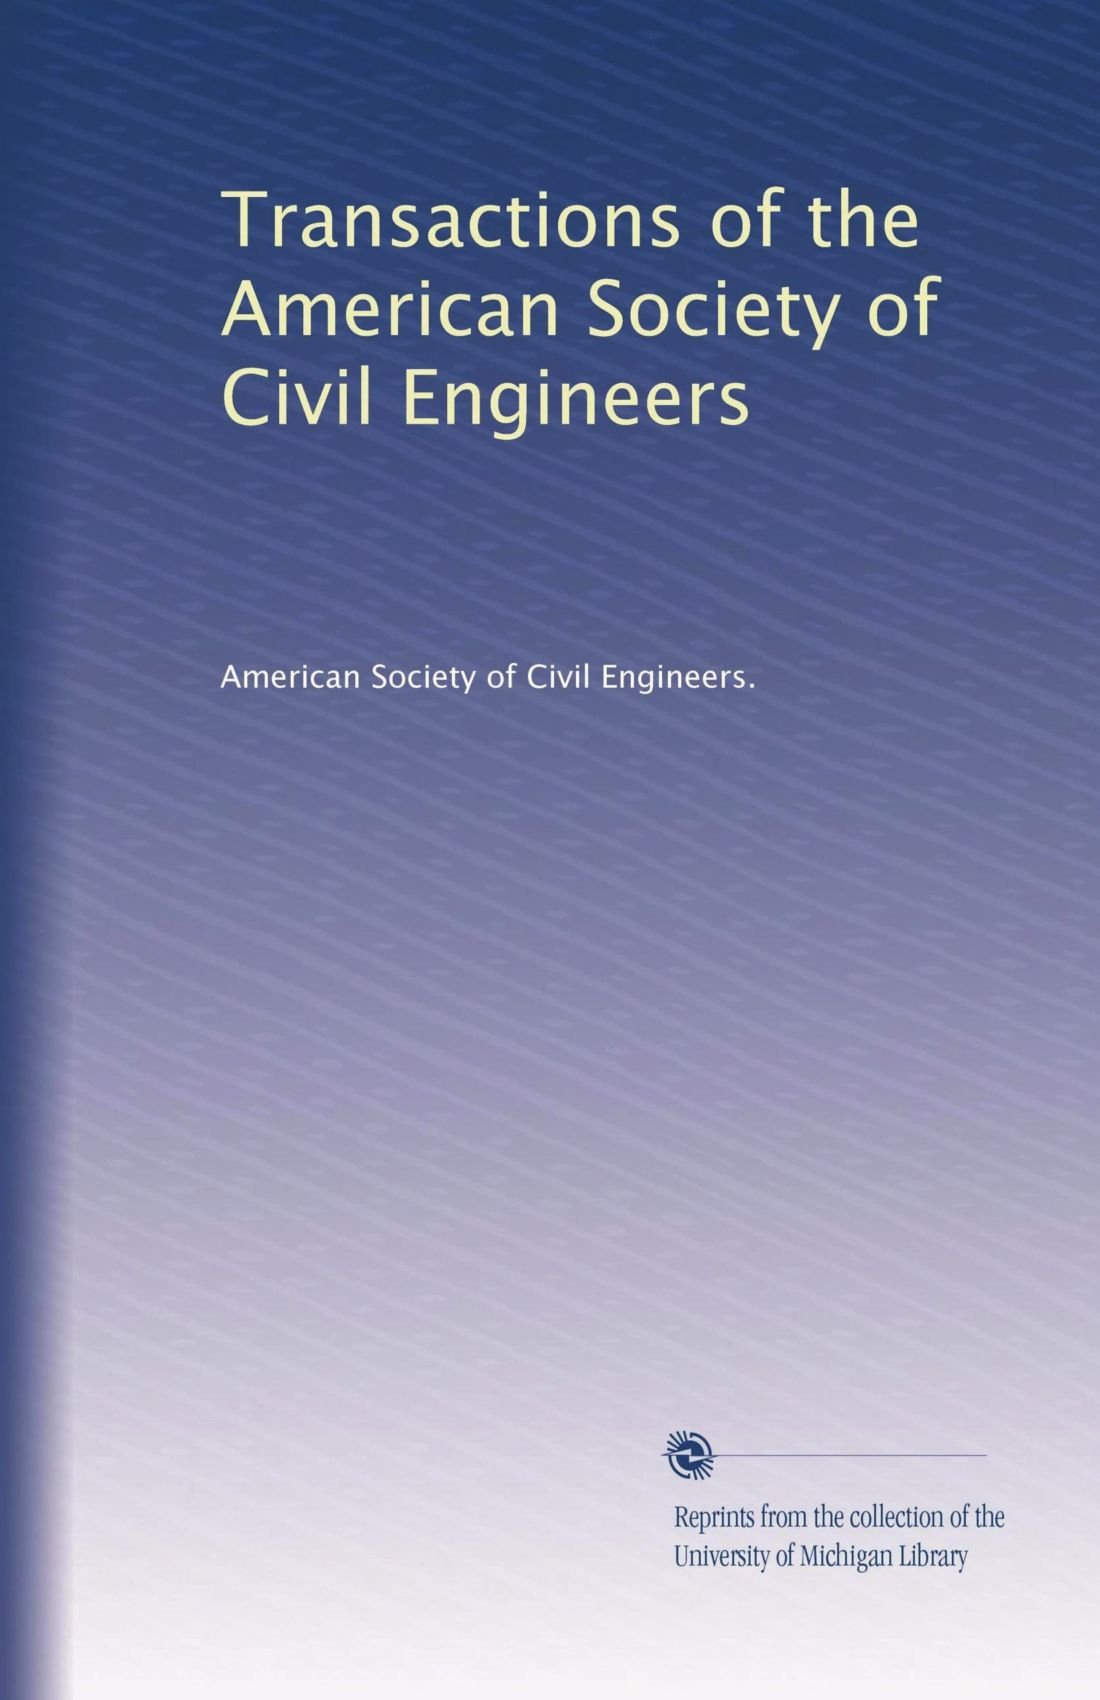 Download Transactions of the American Society of Civil Engineers (Volume 50) PDF